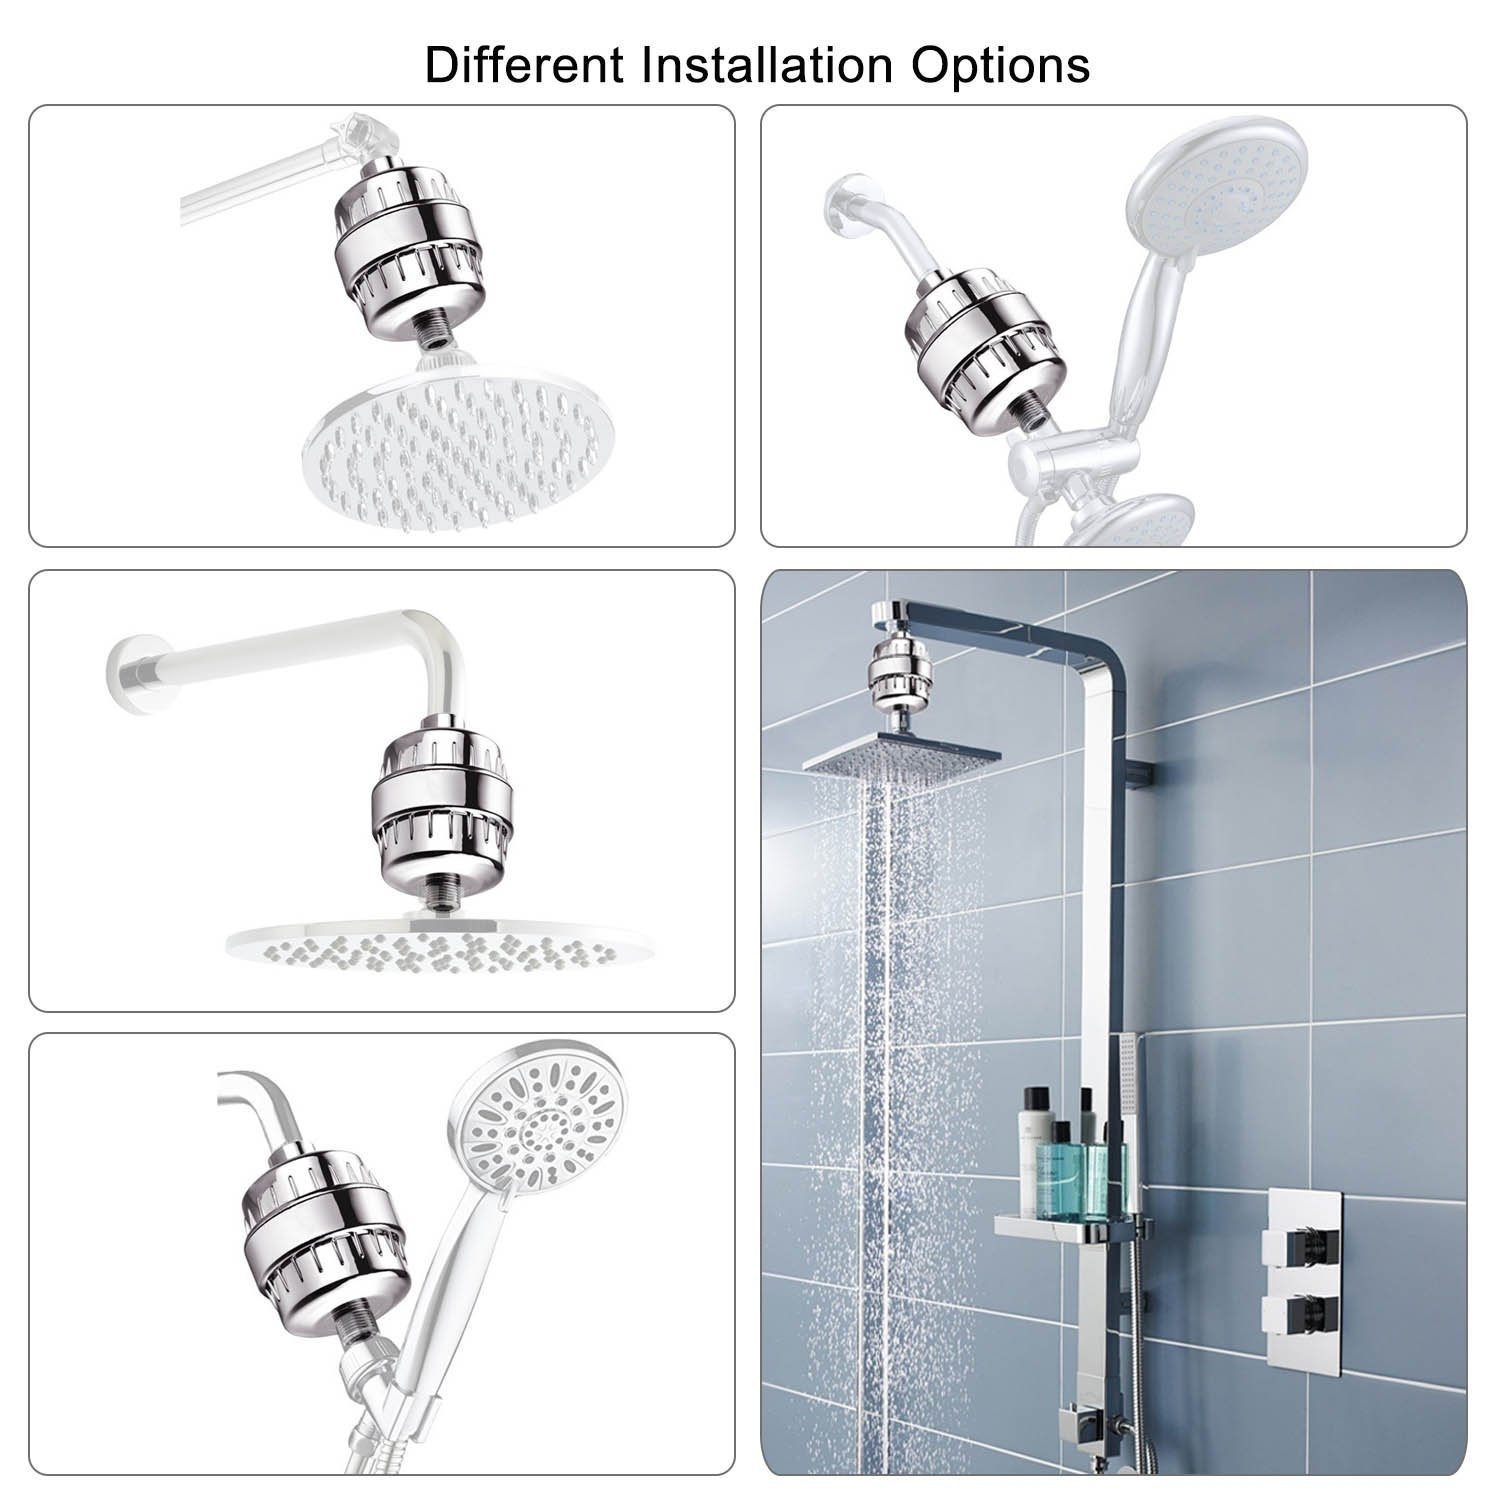 Showerheads Handheld Showers Showers Shower Parts